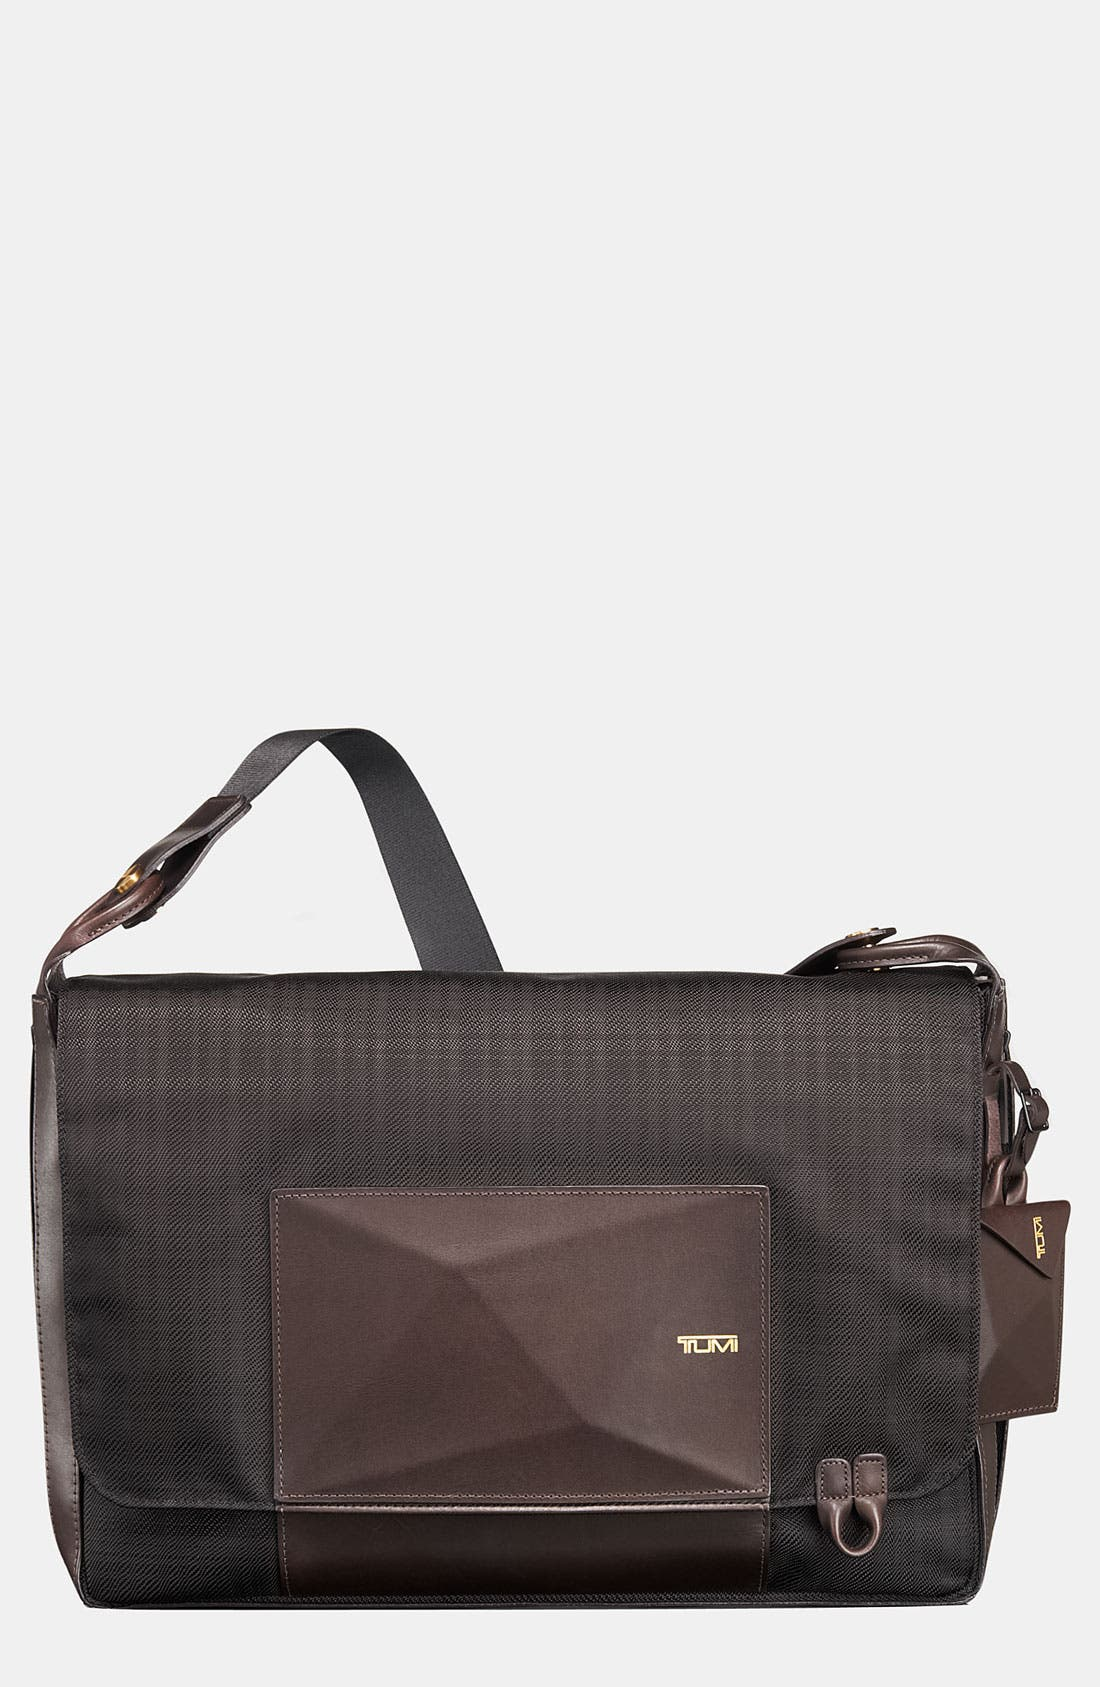 Main Image - Tumi 'Dror' Messenger Bag